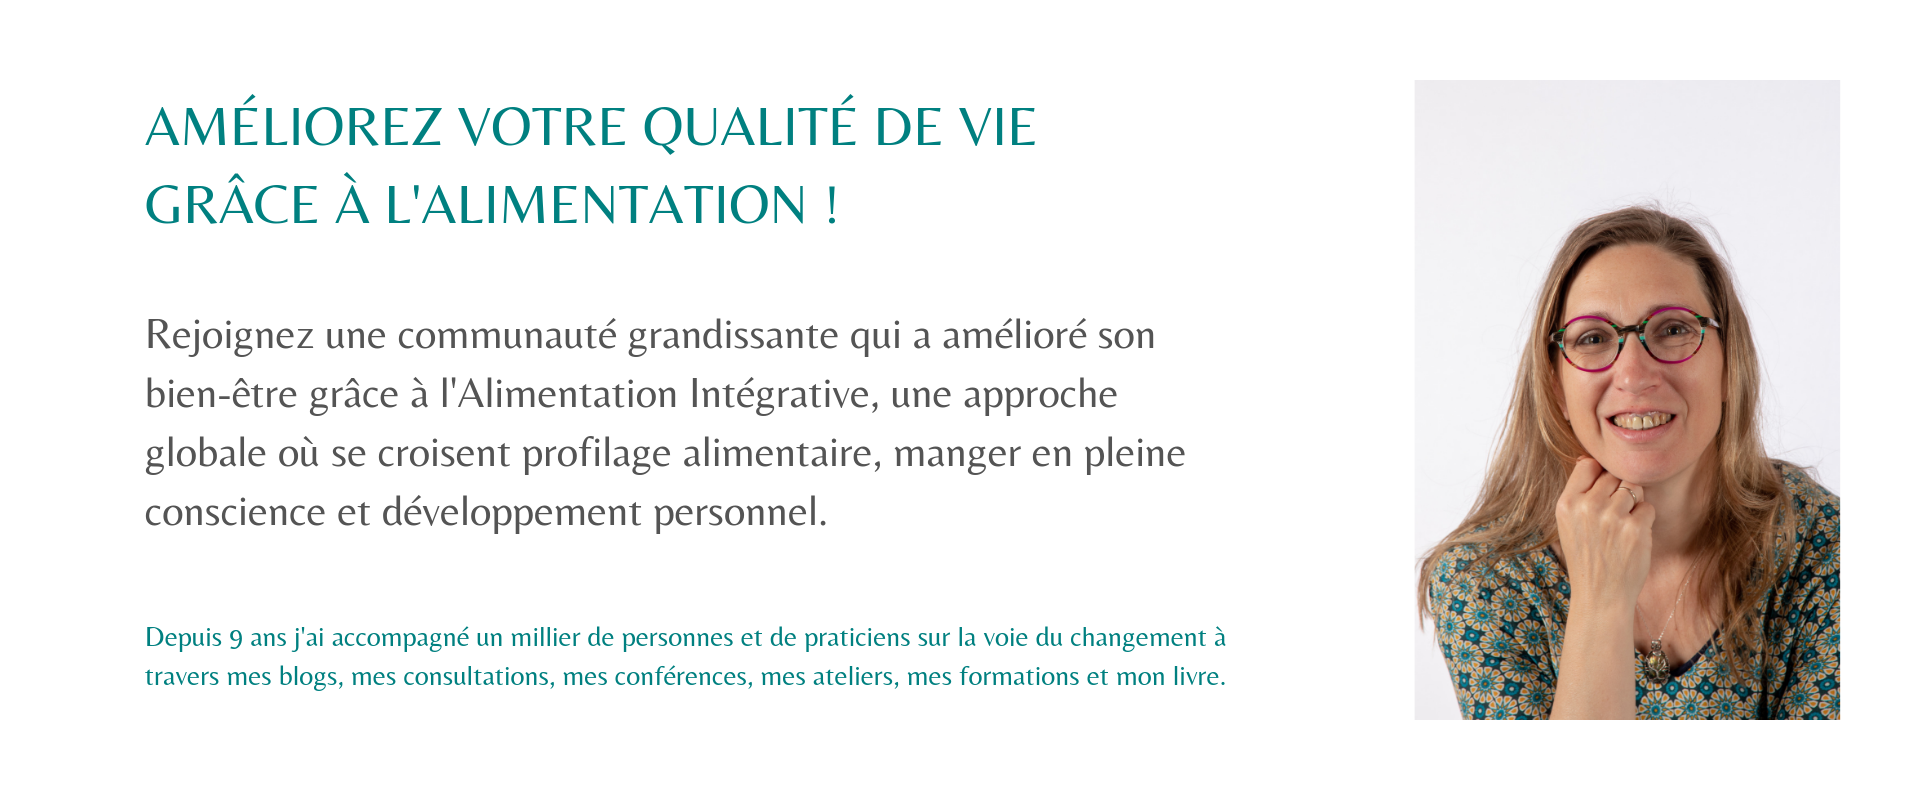 https://www.alimentation-integrative.fr/wp-content/uploads/2019/02/GT-bleu-1.png